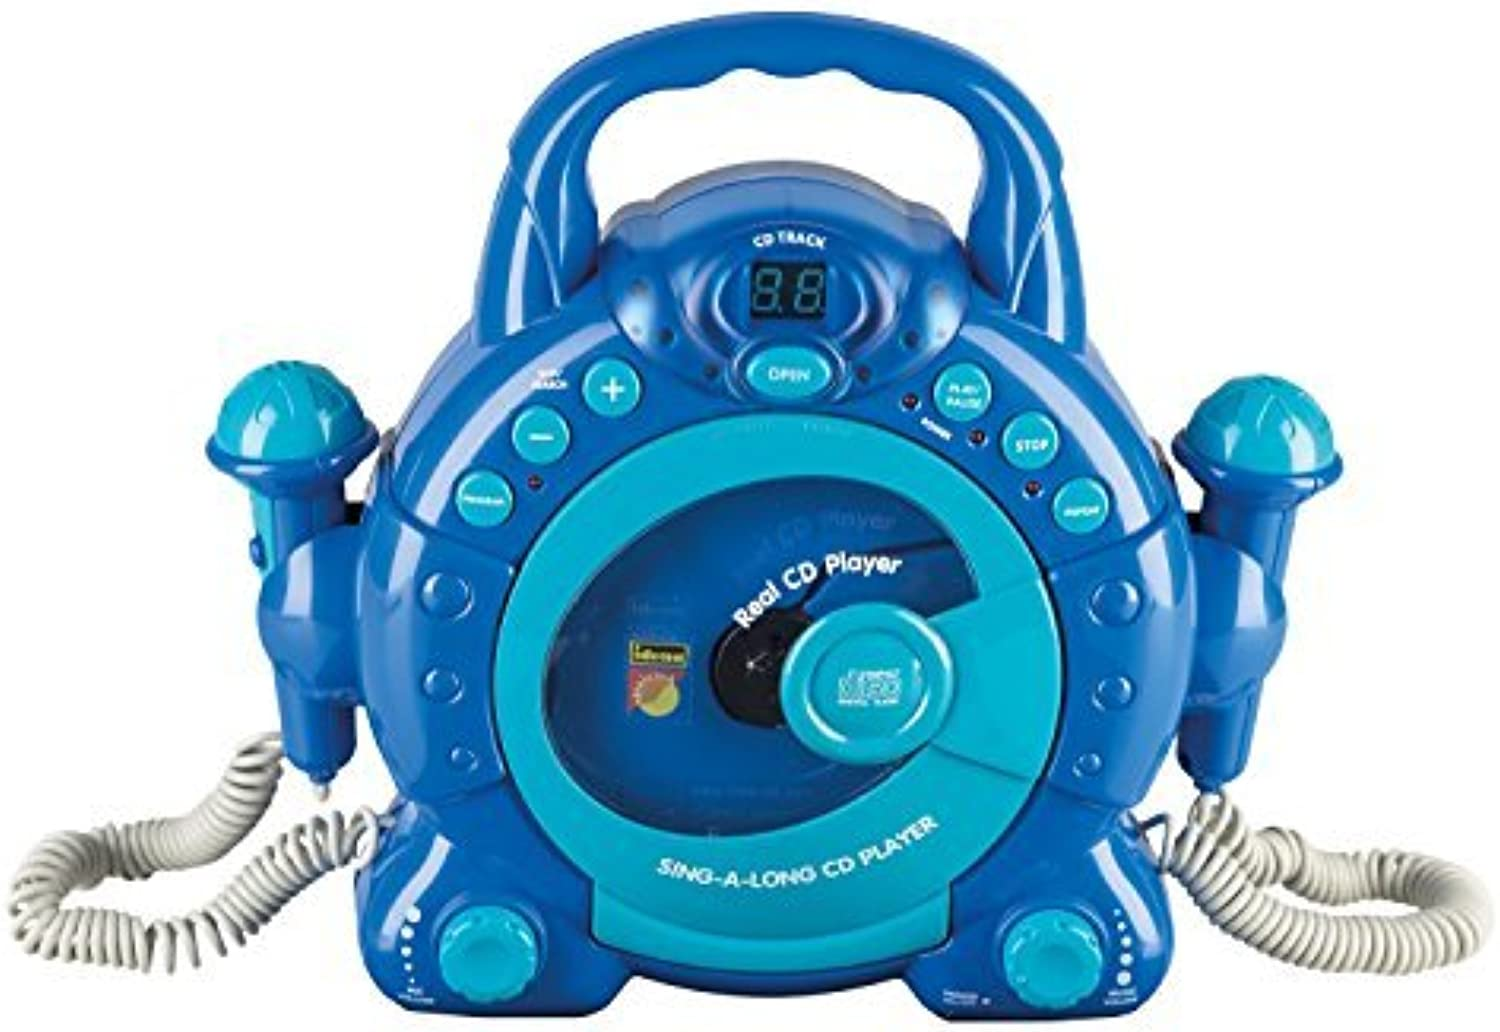 Idena 40104 - Kinder CD Player SING A LONG mit 2 Mikrophonen und LED Display, blau by Idena